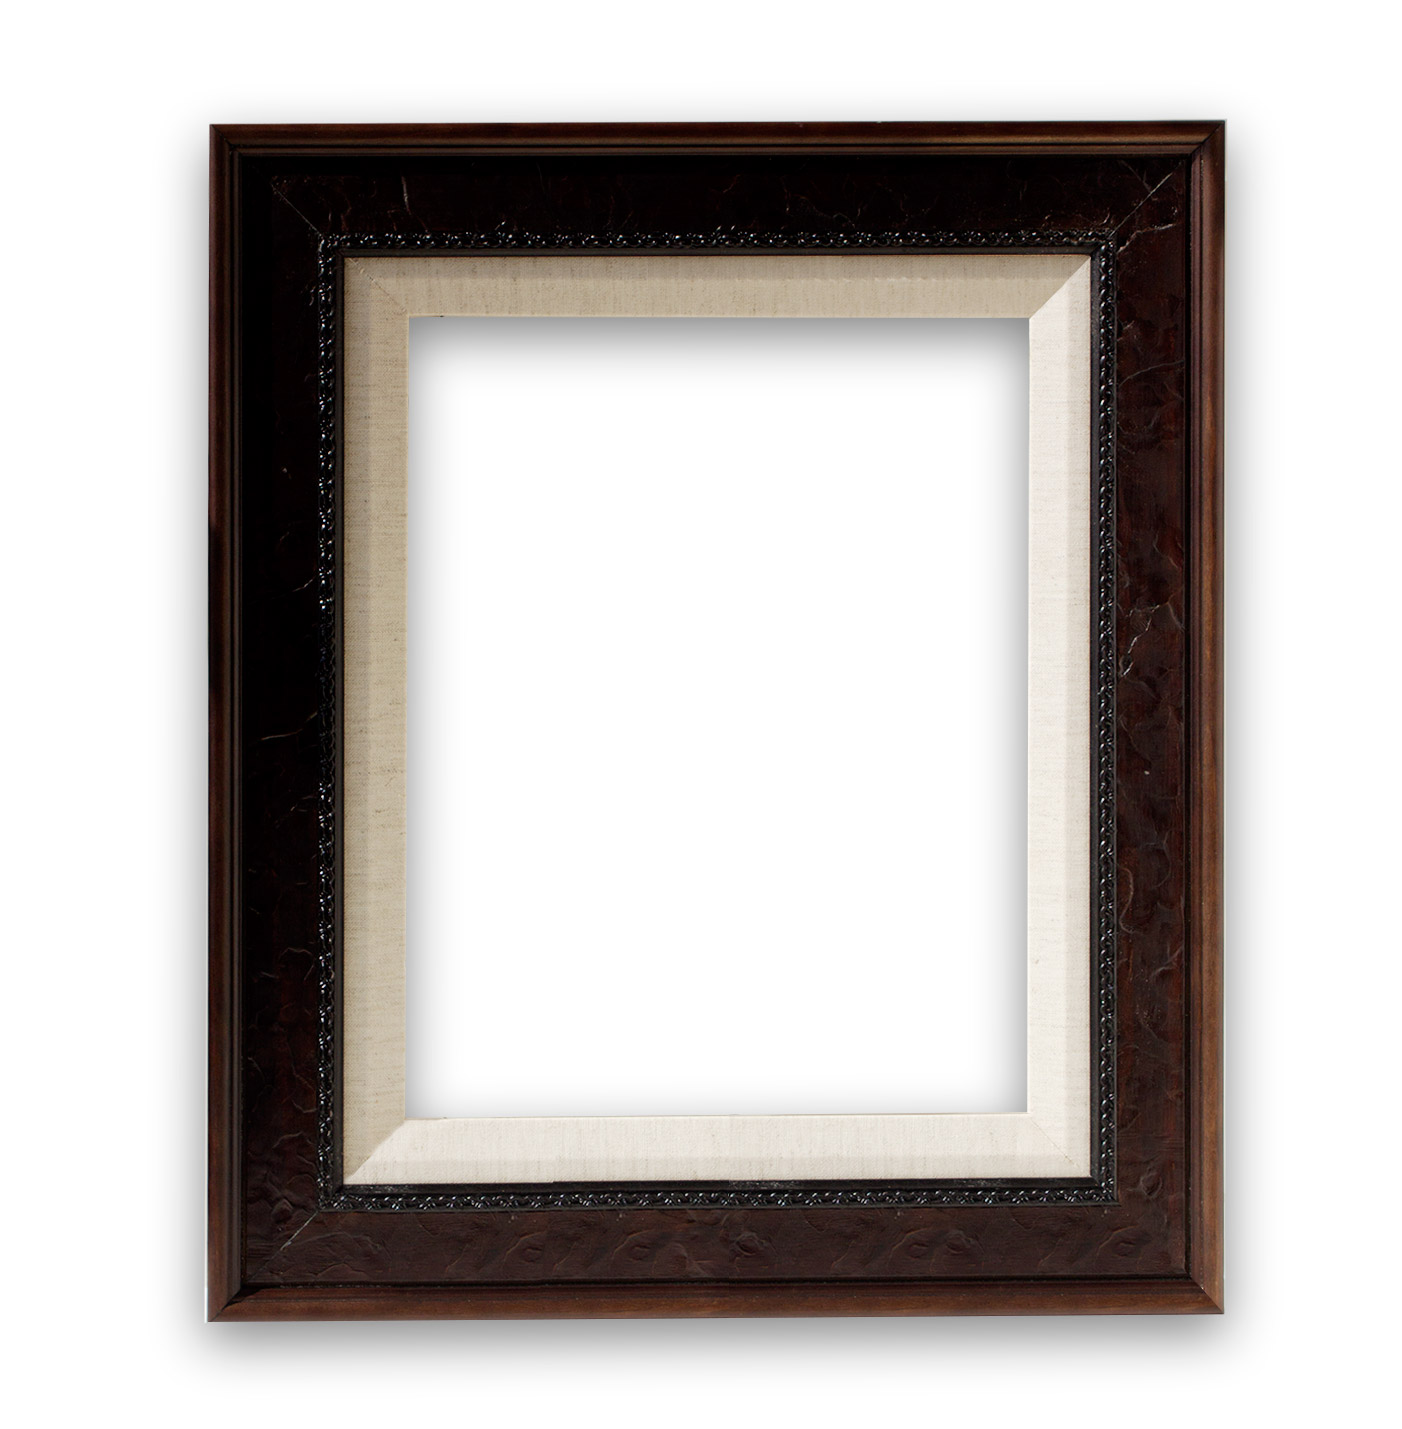 FRAME-2 (leather/linen liner)